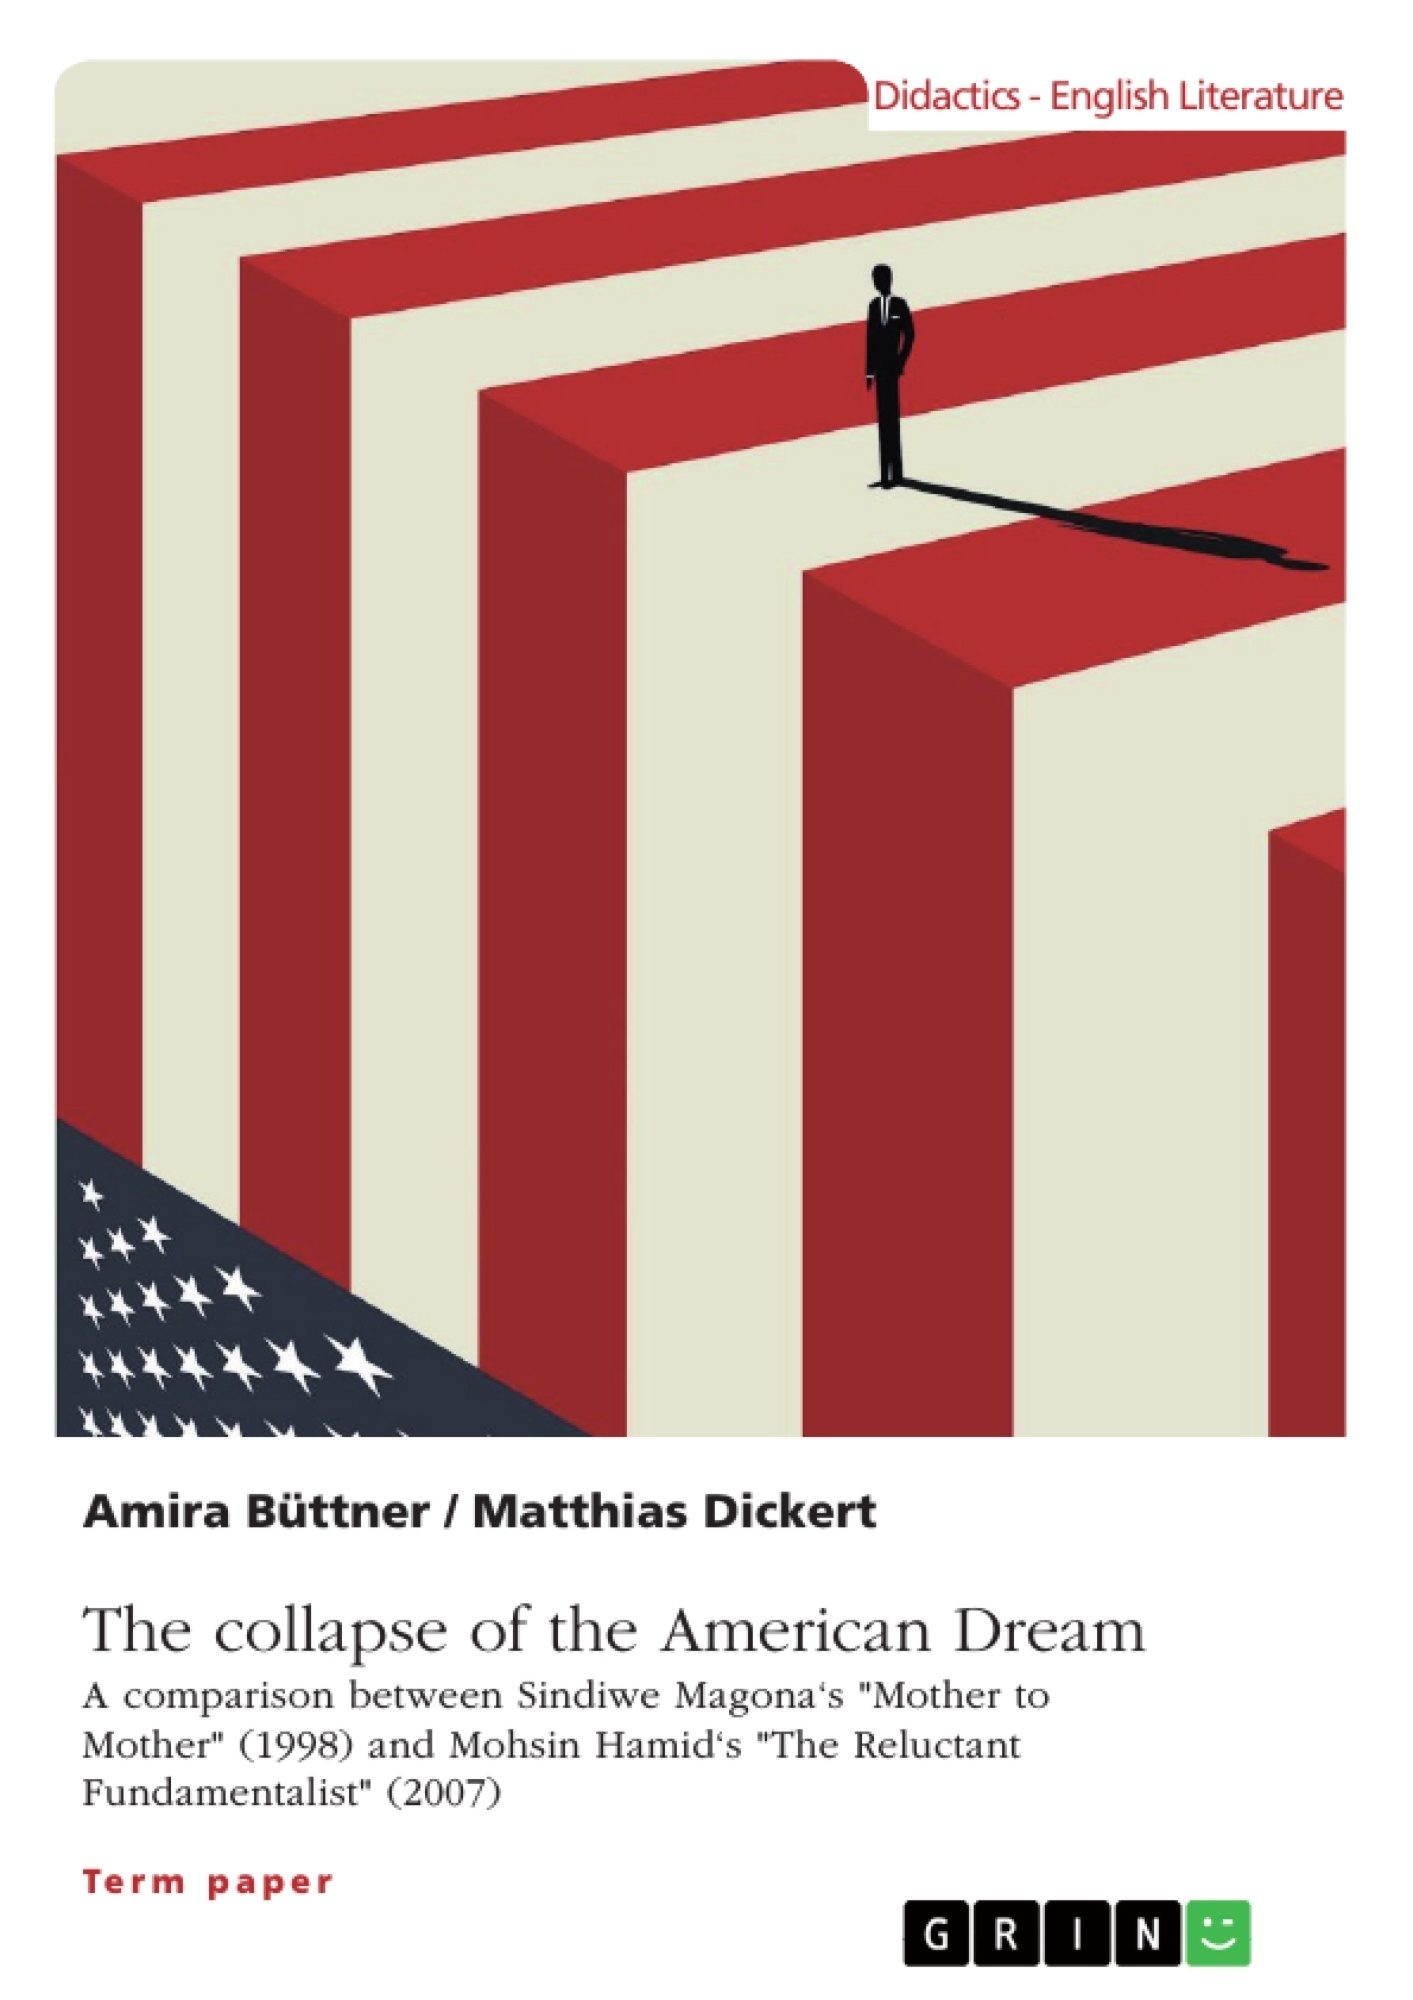 """Title: The collapse of the American Dream. A comparison between Sindiwe Magona's """"Mother to Mother"""" (1998) and Mohsin Hamid's """"The Reluctant Fundamentalist"""" (2007)"""